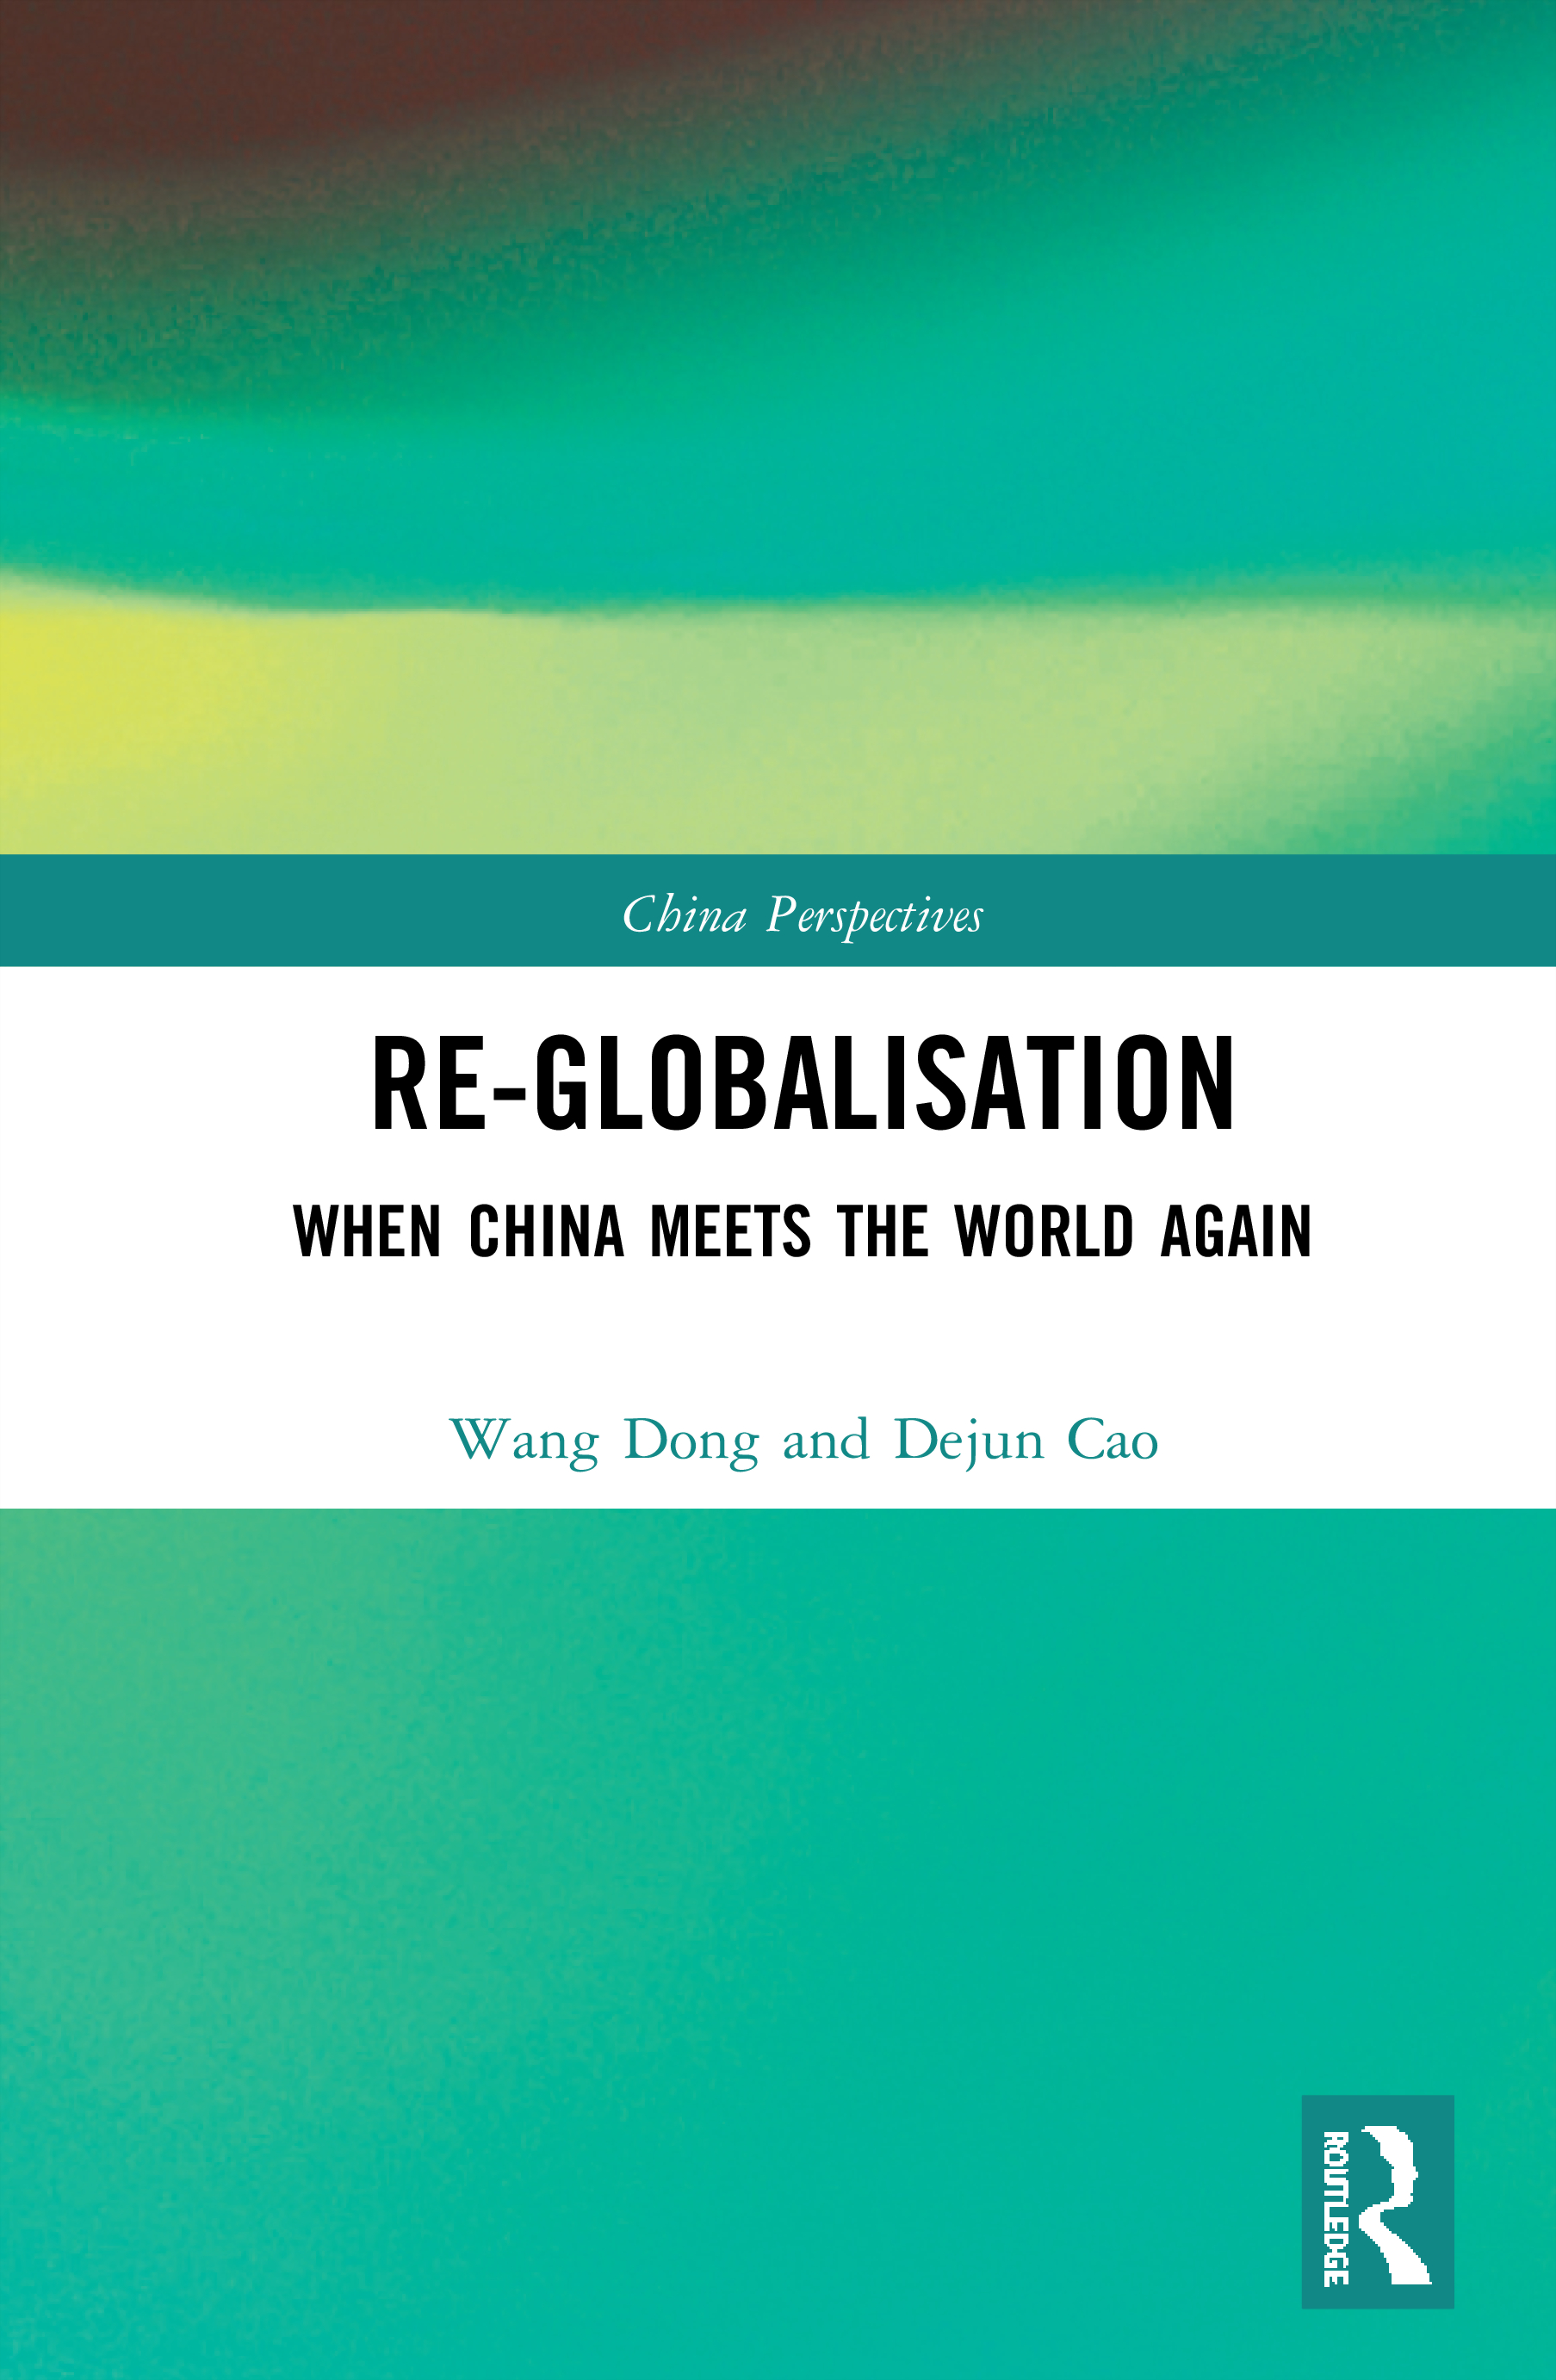 The Asian Infrastructure and Investment Bank pushes forward reglobalisation